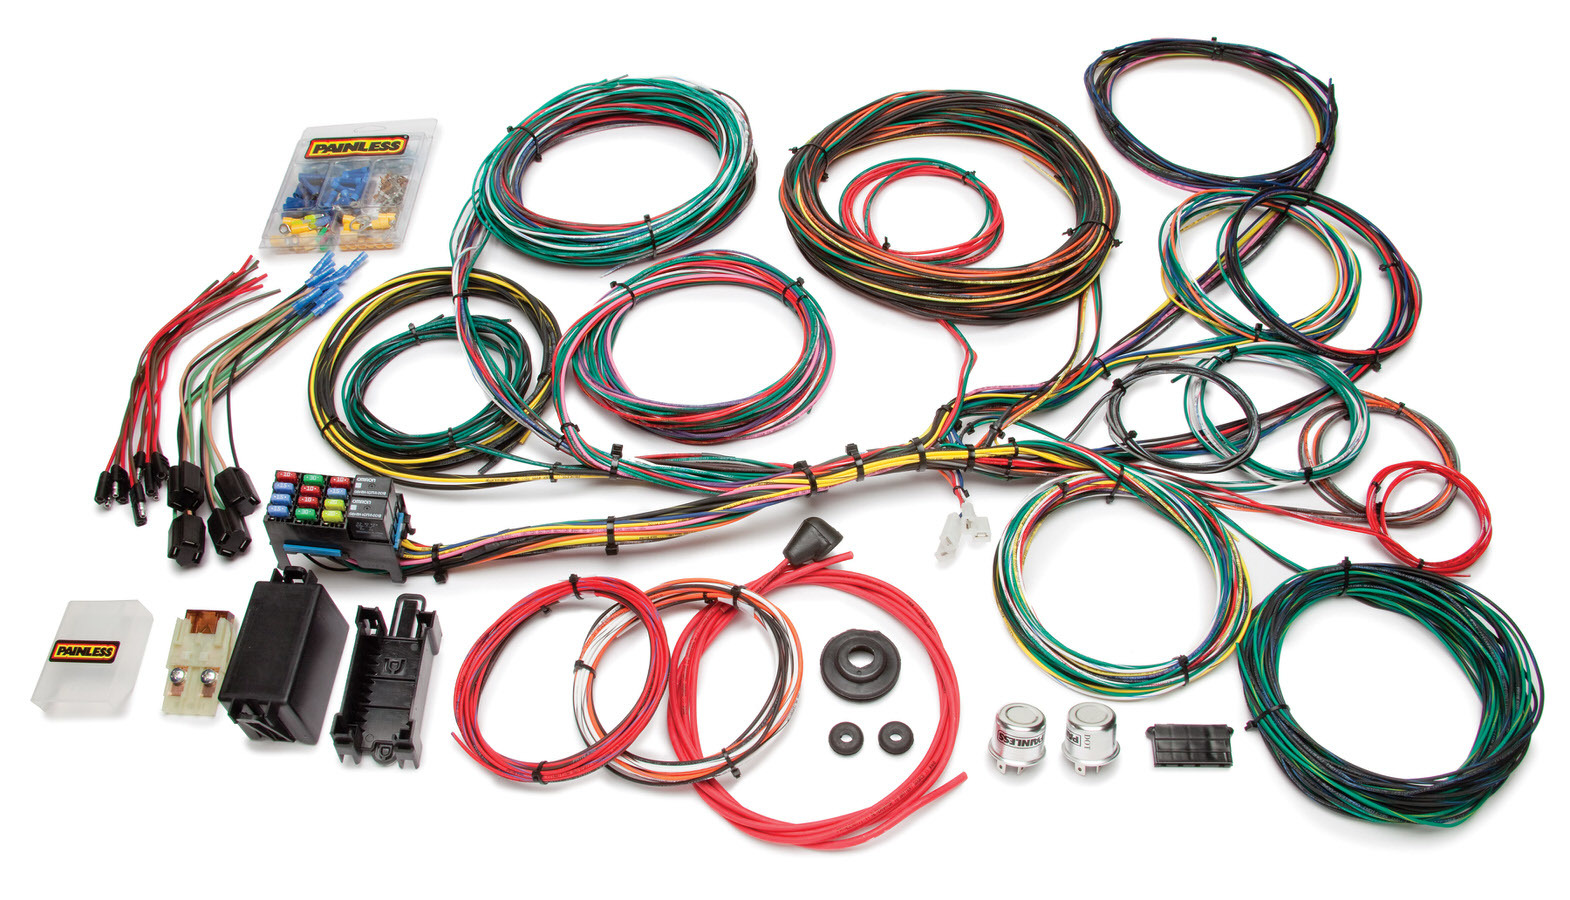 Painless Wiring 10123 Car Wiring Harness, Customizable, Complete, 21 Circuit, Ford, Kit